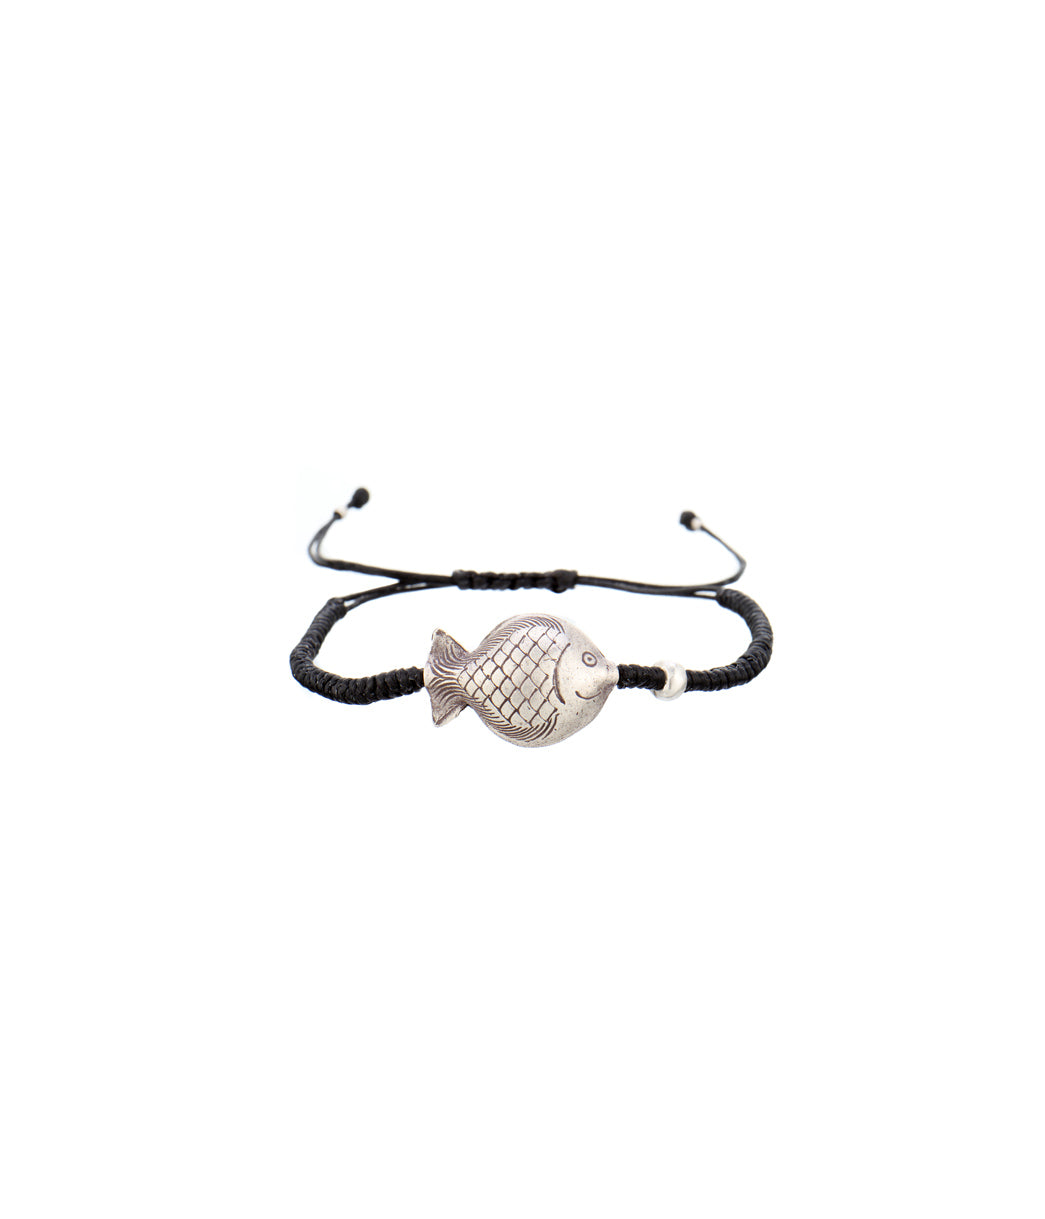 Fish Black Thread Bracelet Small